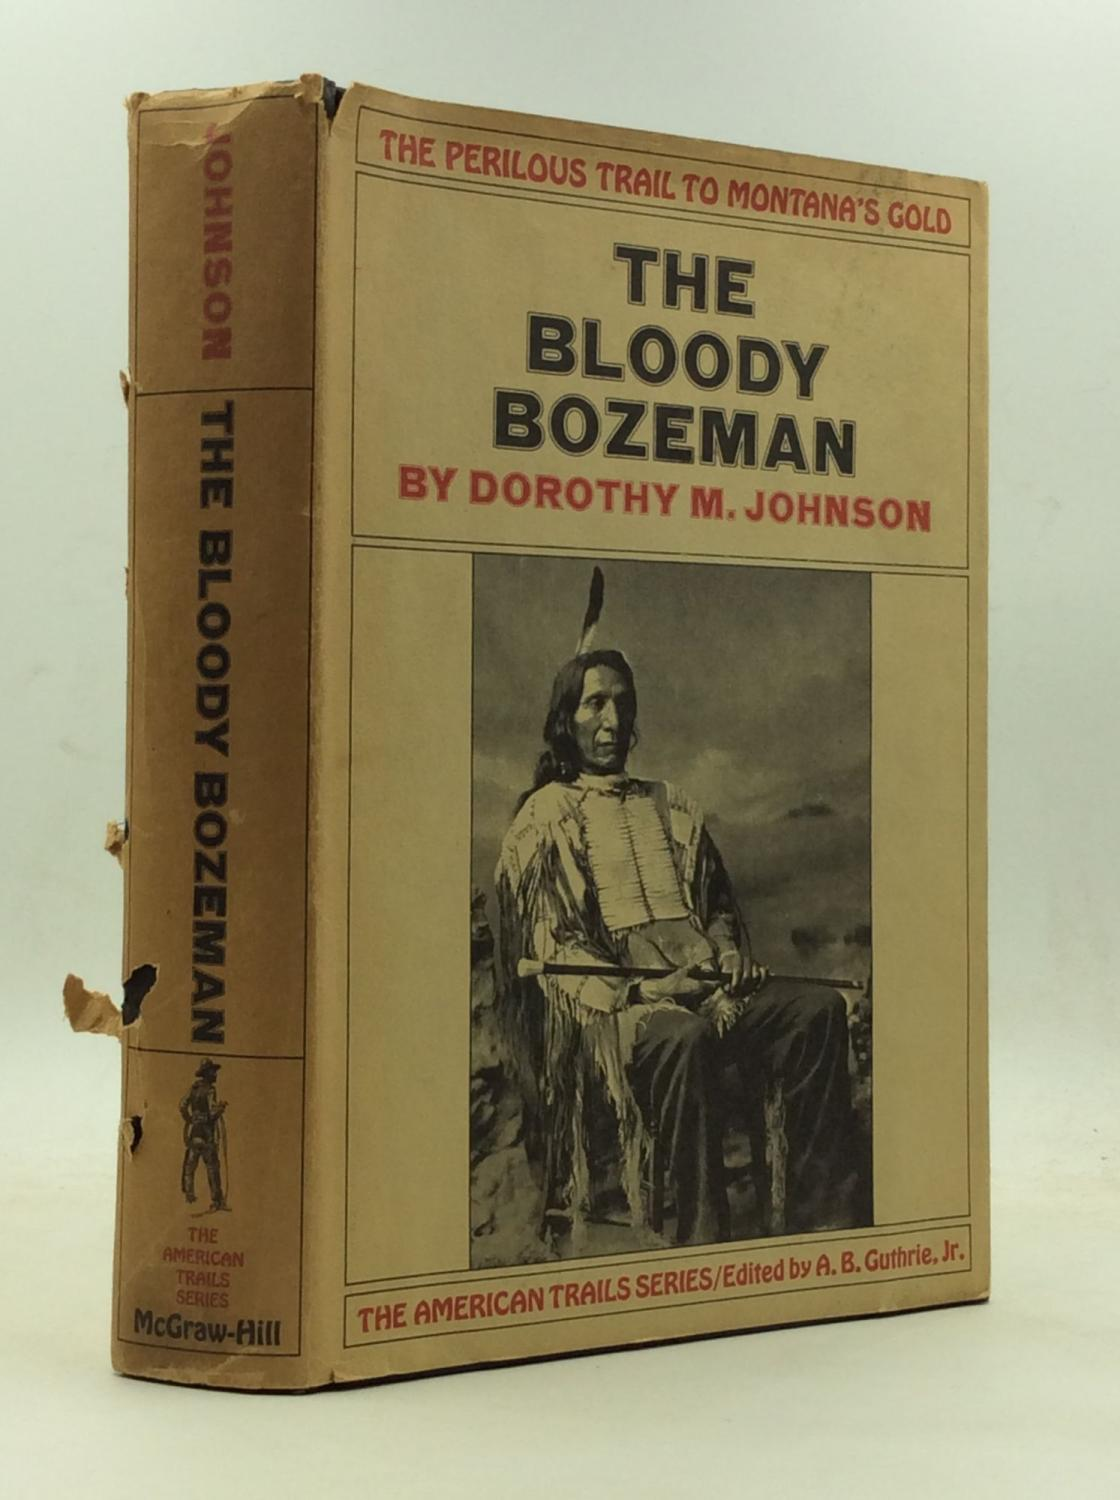 THE BLOODY BOZEMAN: The Perilous Trail to: Dorothy M. Johnson